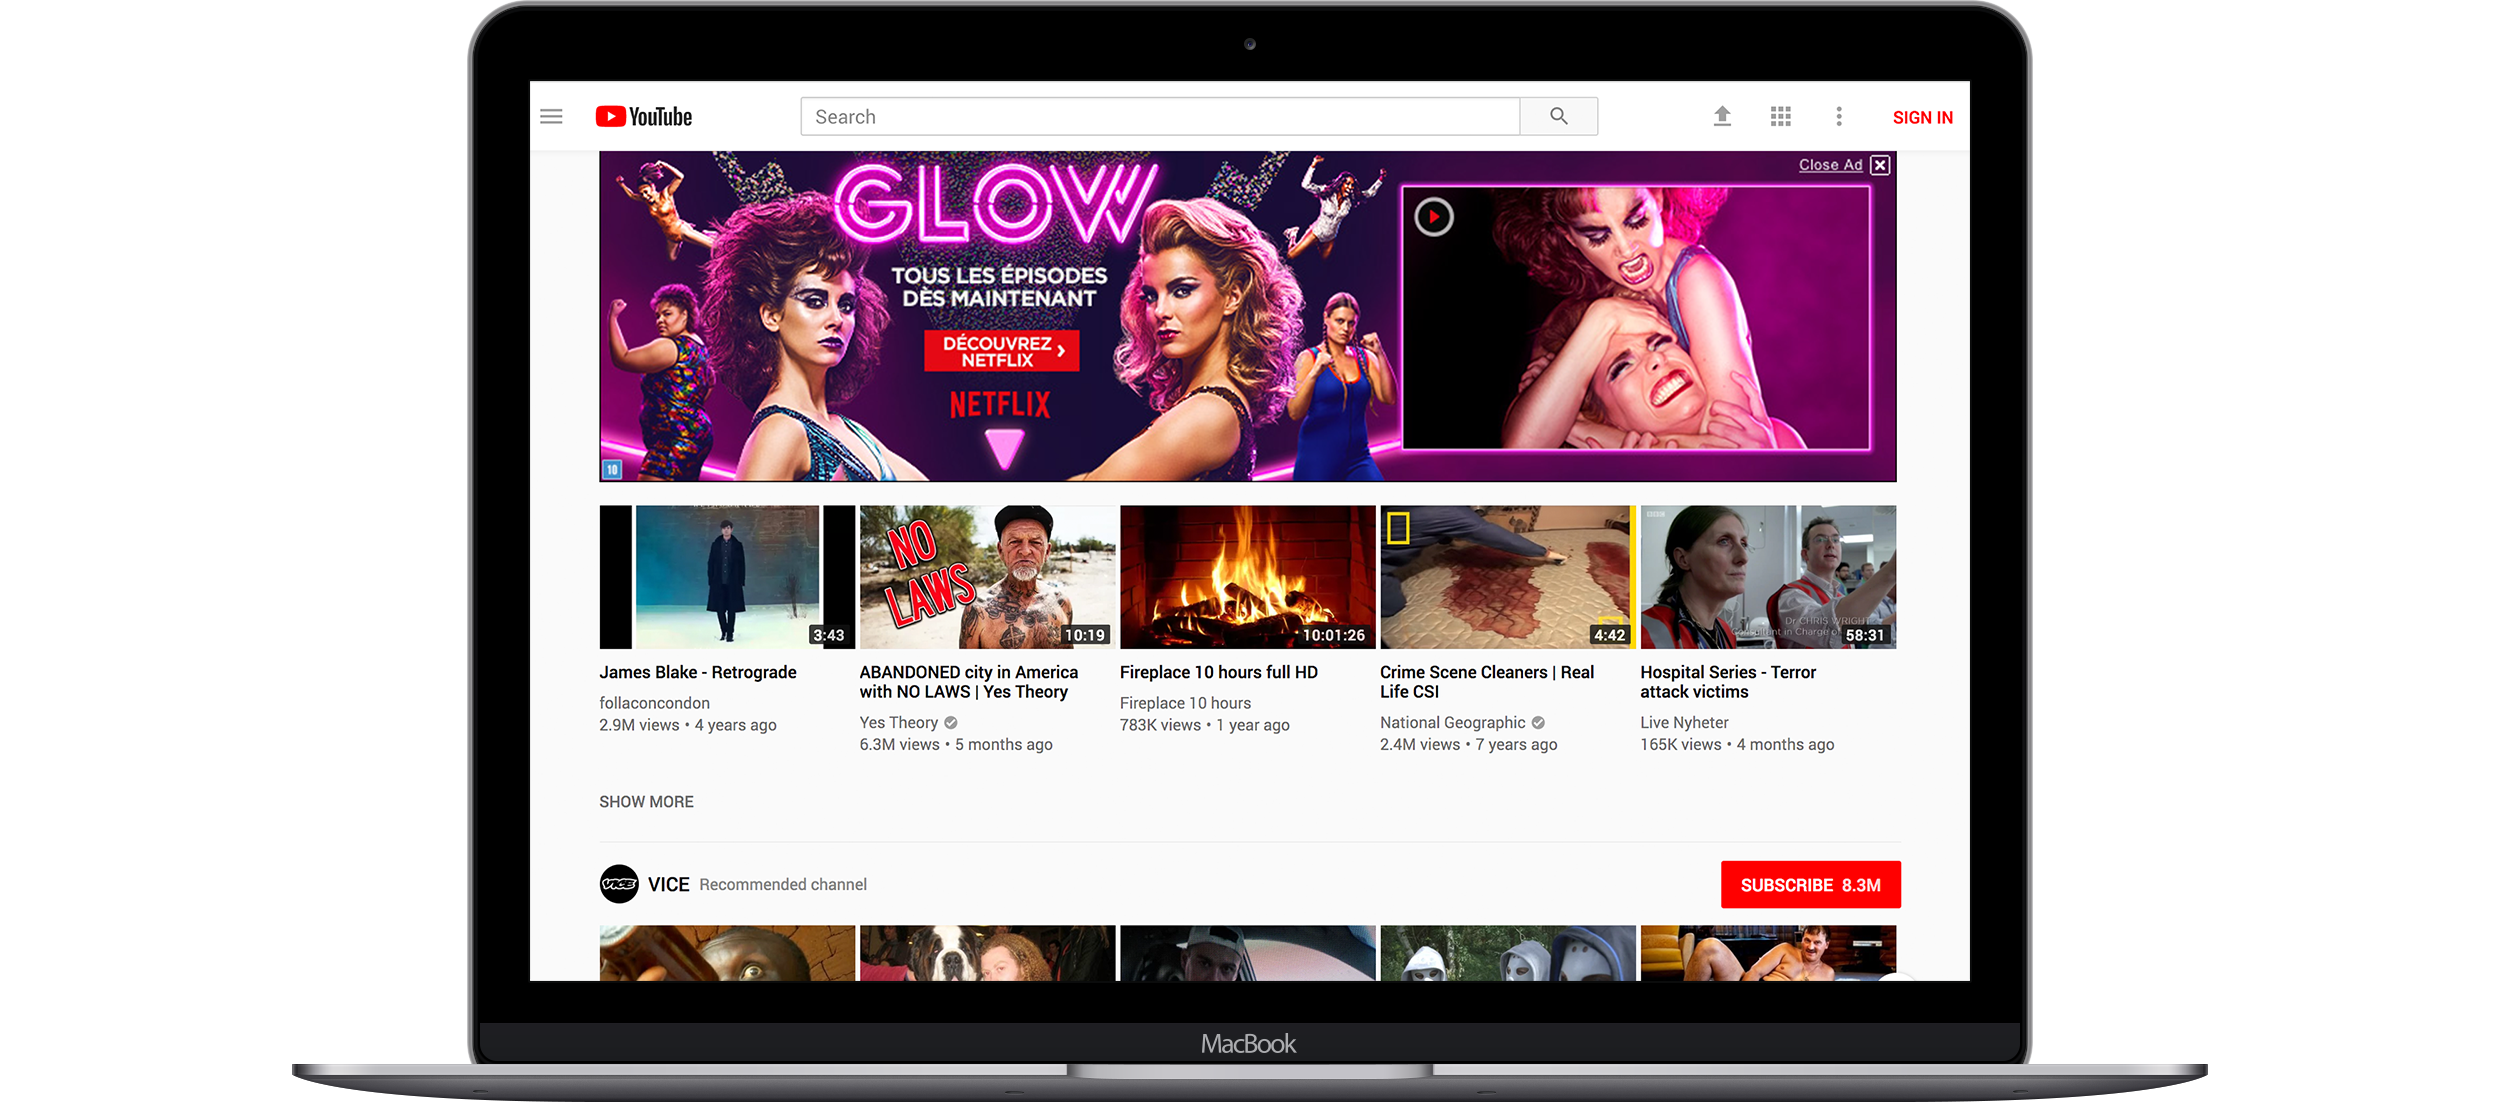 GLOW_YT_MASTHEAD_Collapsed.png